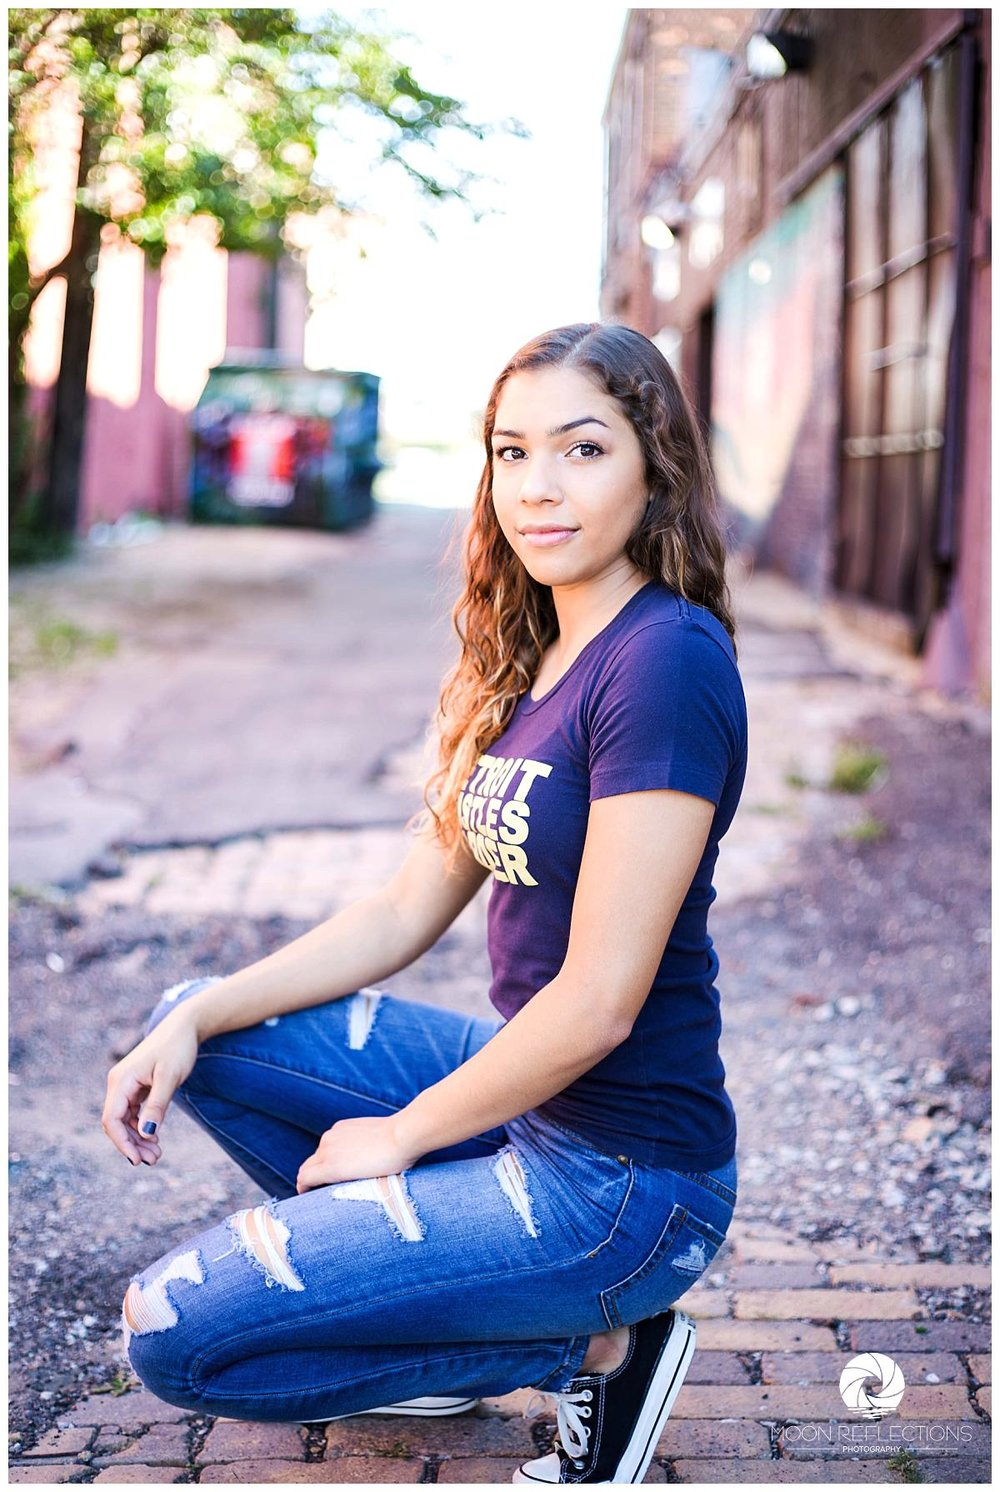 Moon Reflections Photography - Senior Portraits - Senior Pictures - Senior Experiece - Metro Detroit Photographer _0253.jpg